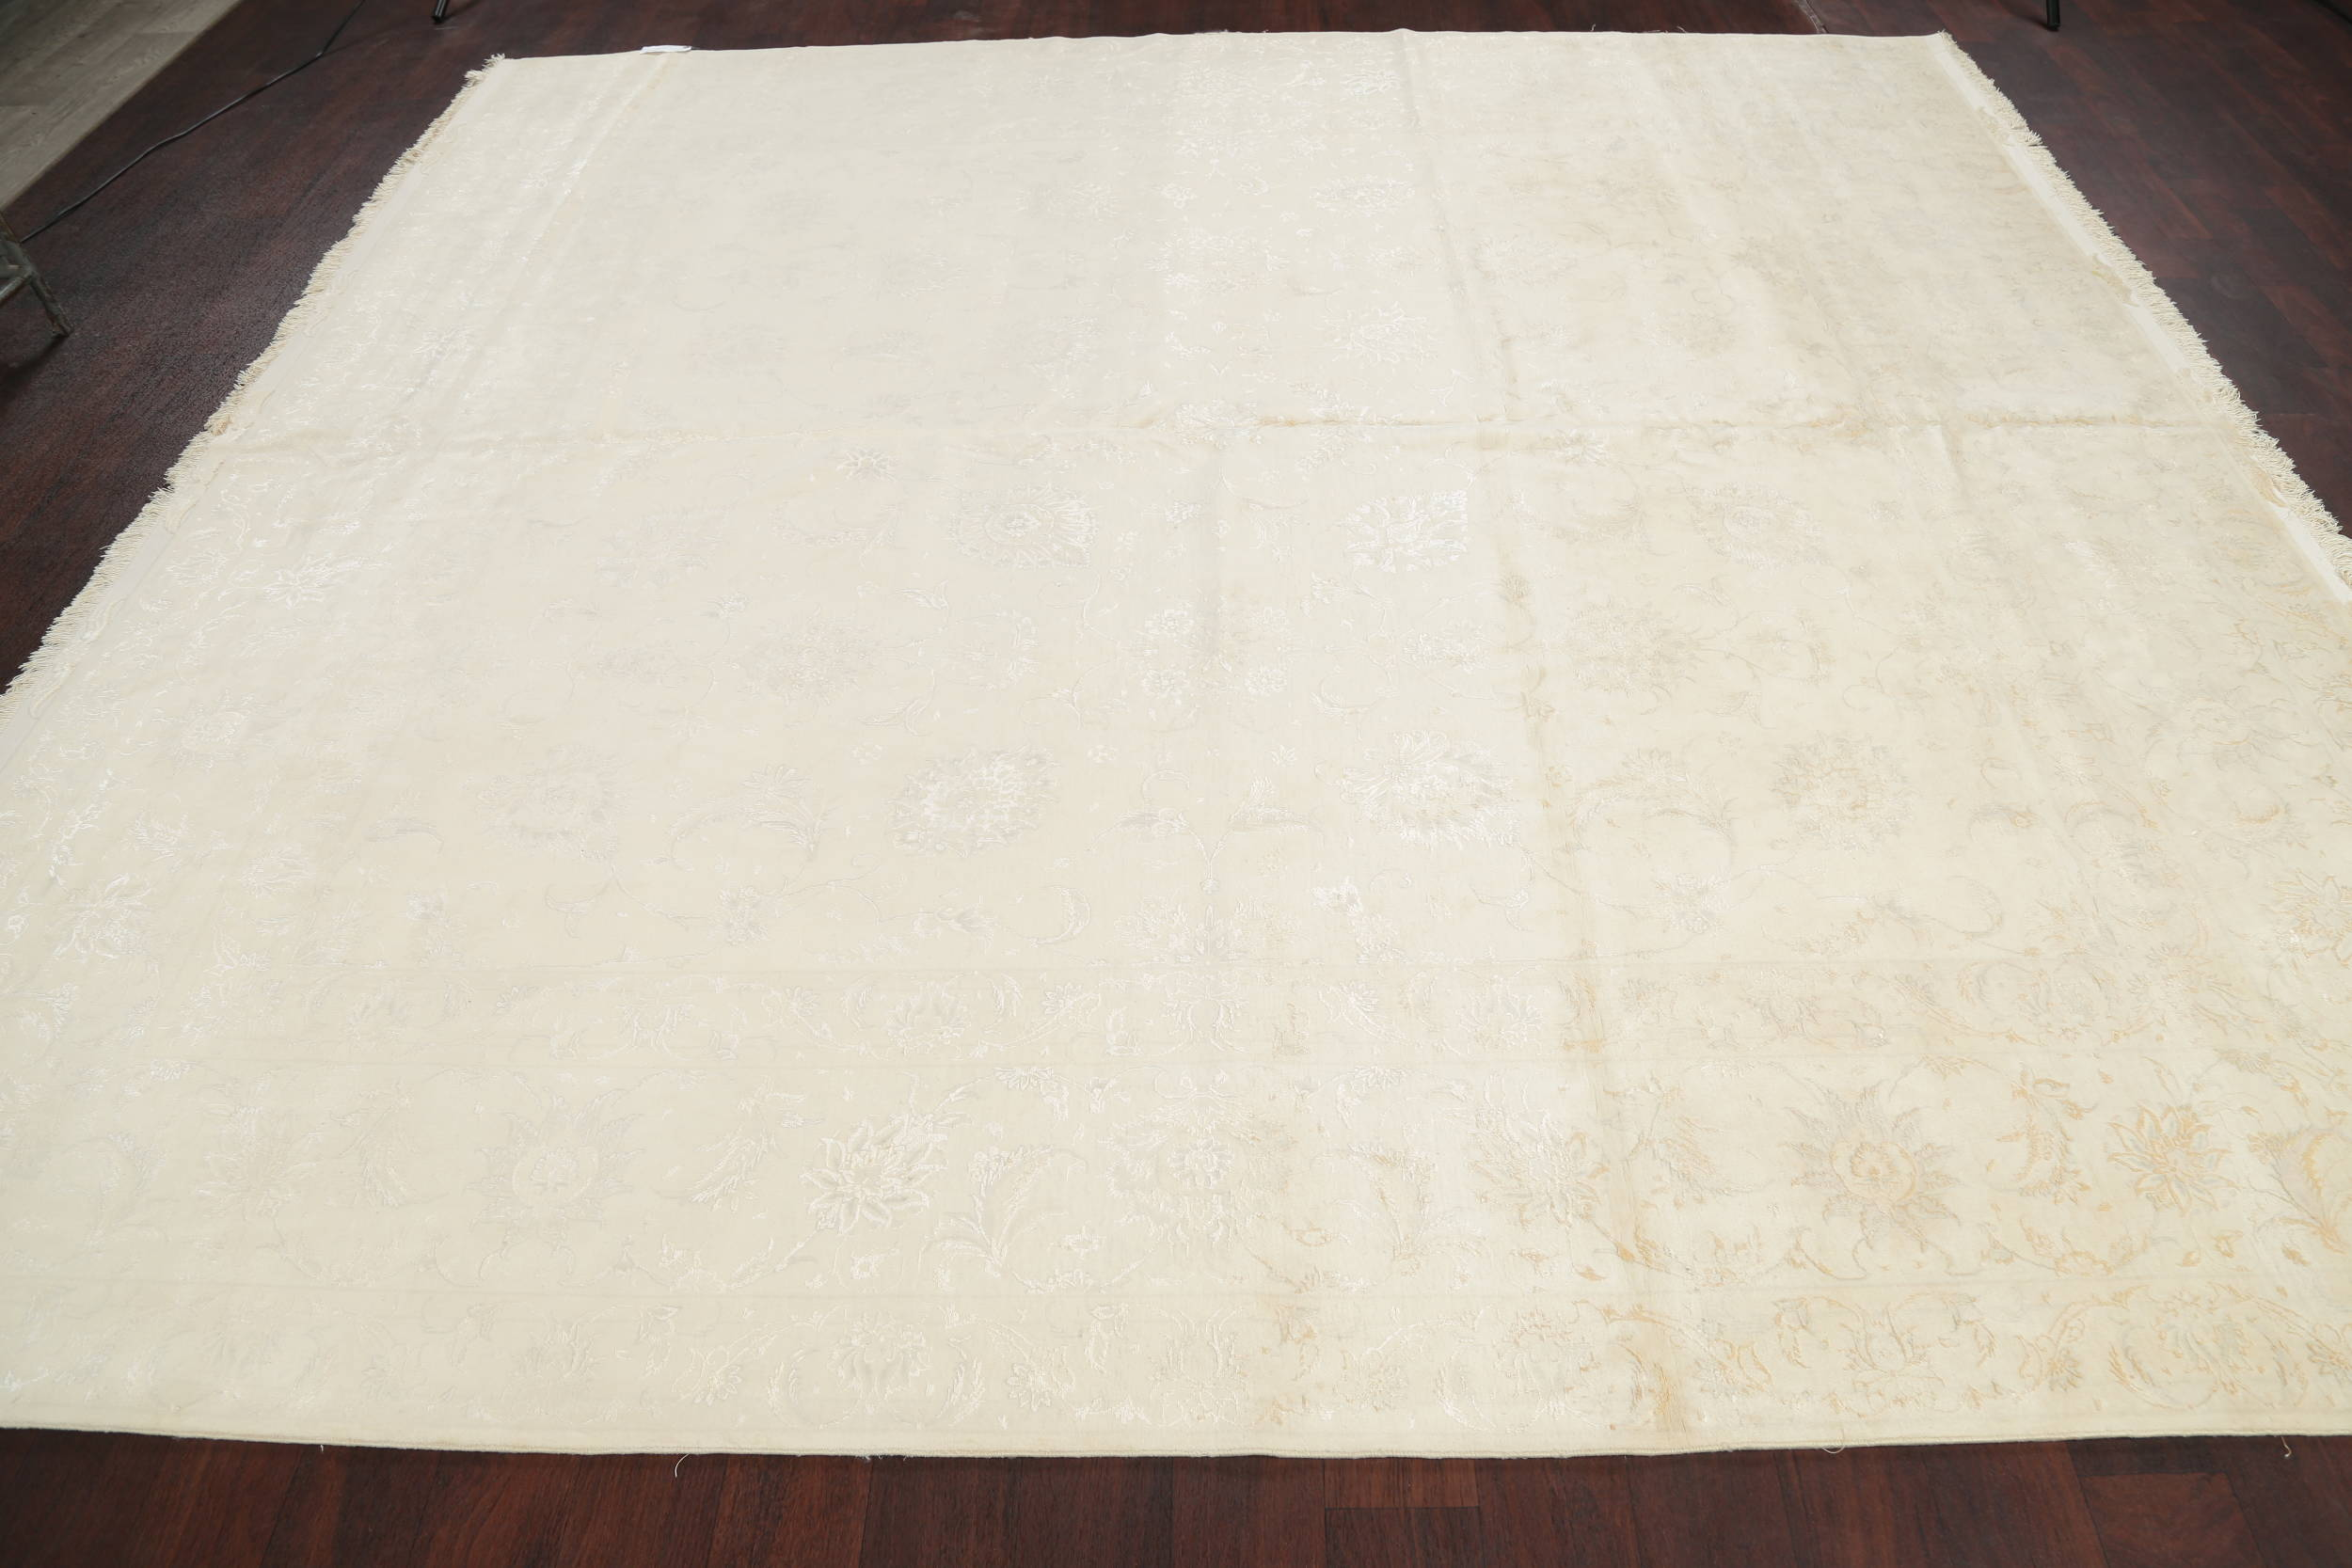 Wool & Silk Ivory/Silver Tabriz Persian Hand-Knotted Square Rug 10'x10'